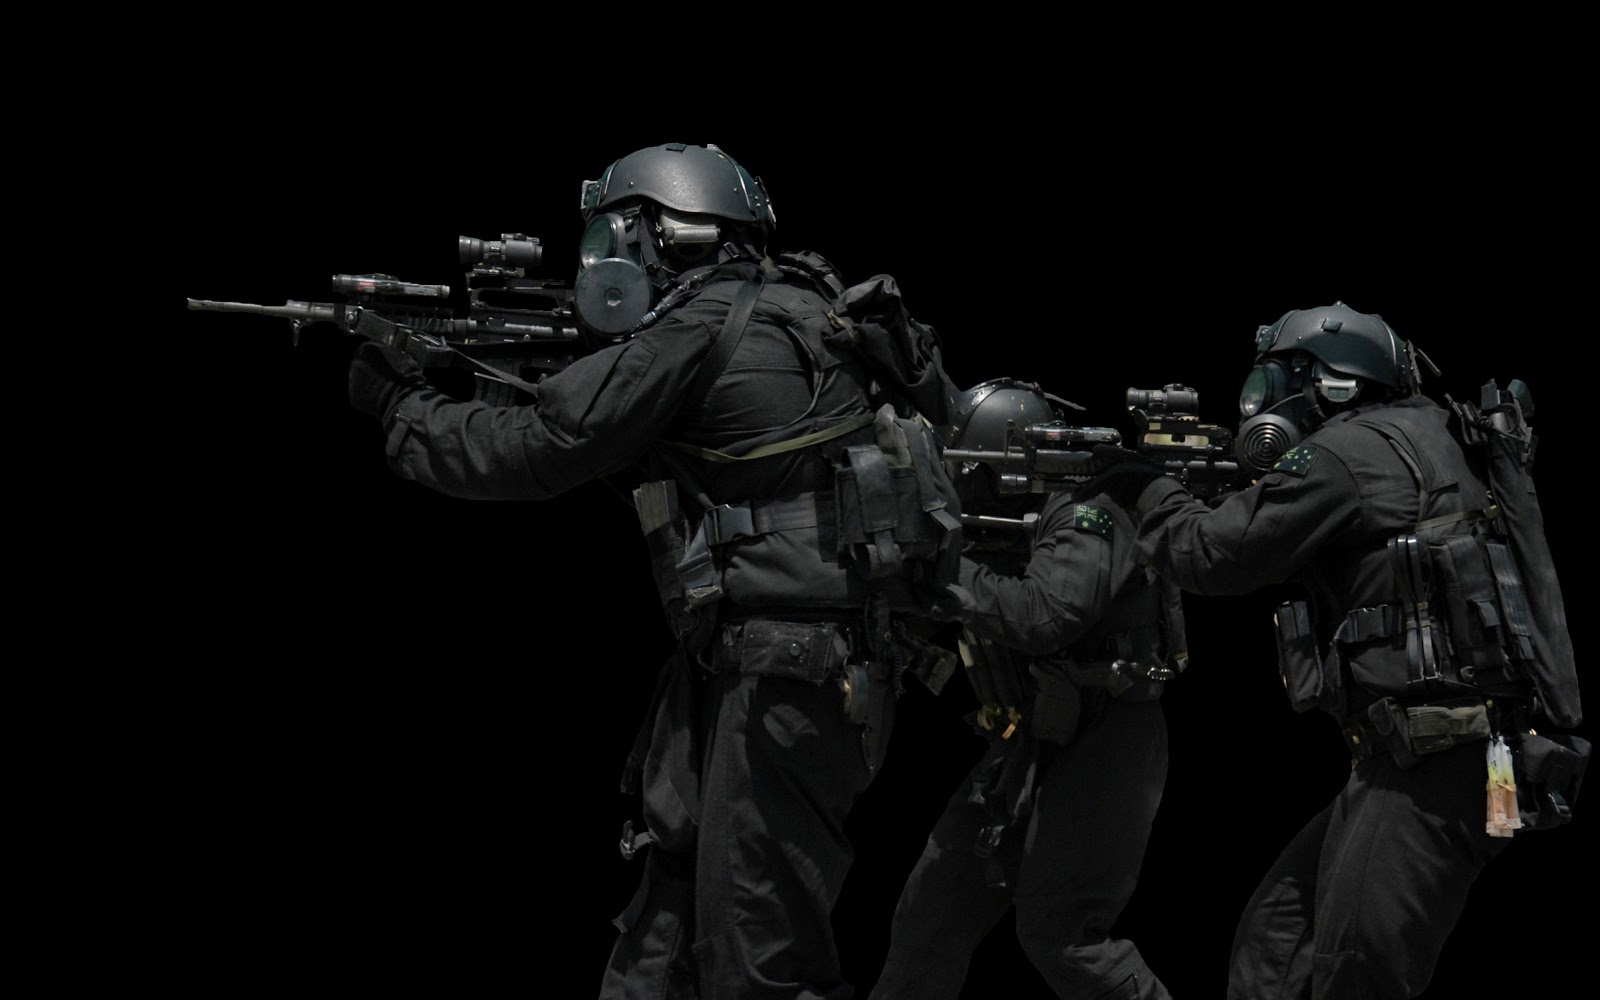 http://4.bp.blogspot.com/-NdBVBSmZxxE/UHvtvlUeZDI/AAAAAAAAGa4/JSnUnkwdE80/s1600/soldiers_black_guns_gear_helmet_swat_gas_masks_desktop_2406x1504_hd-wallpaper-704792.jpeg